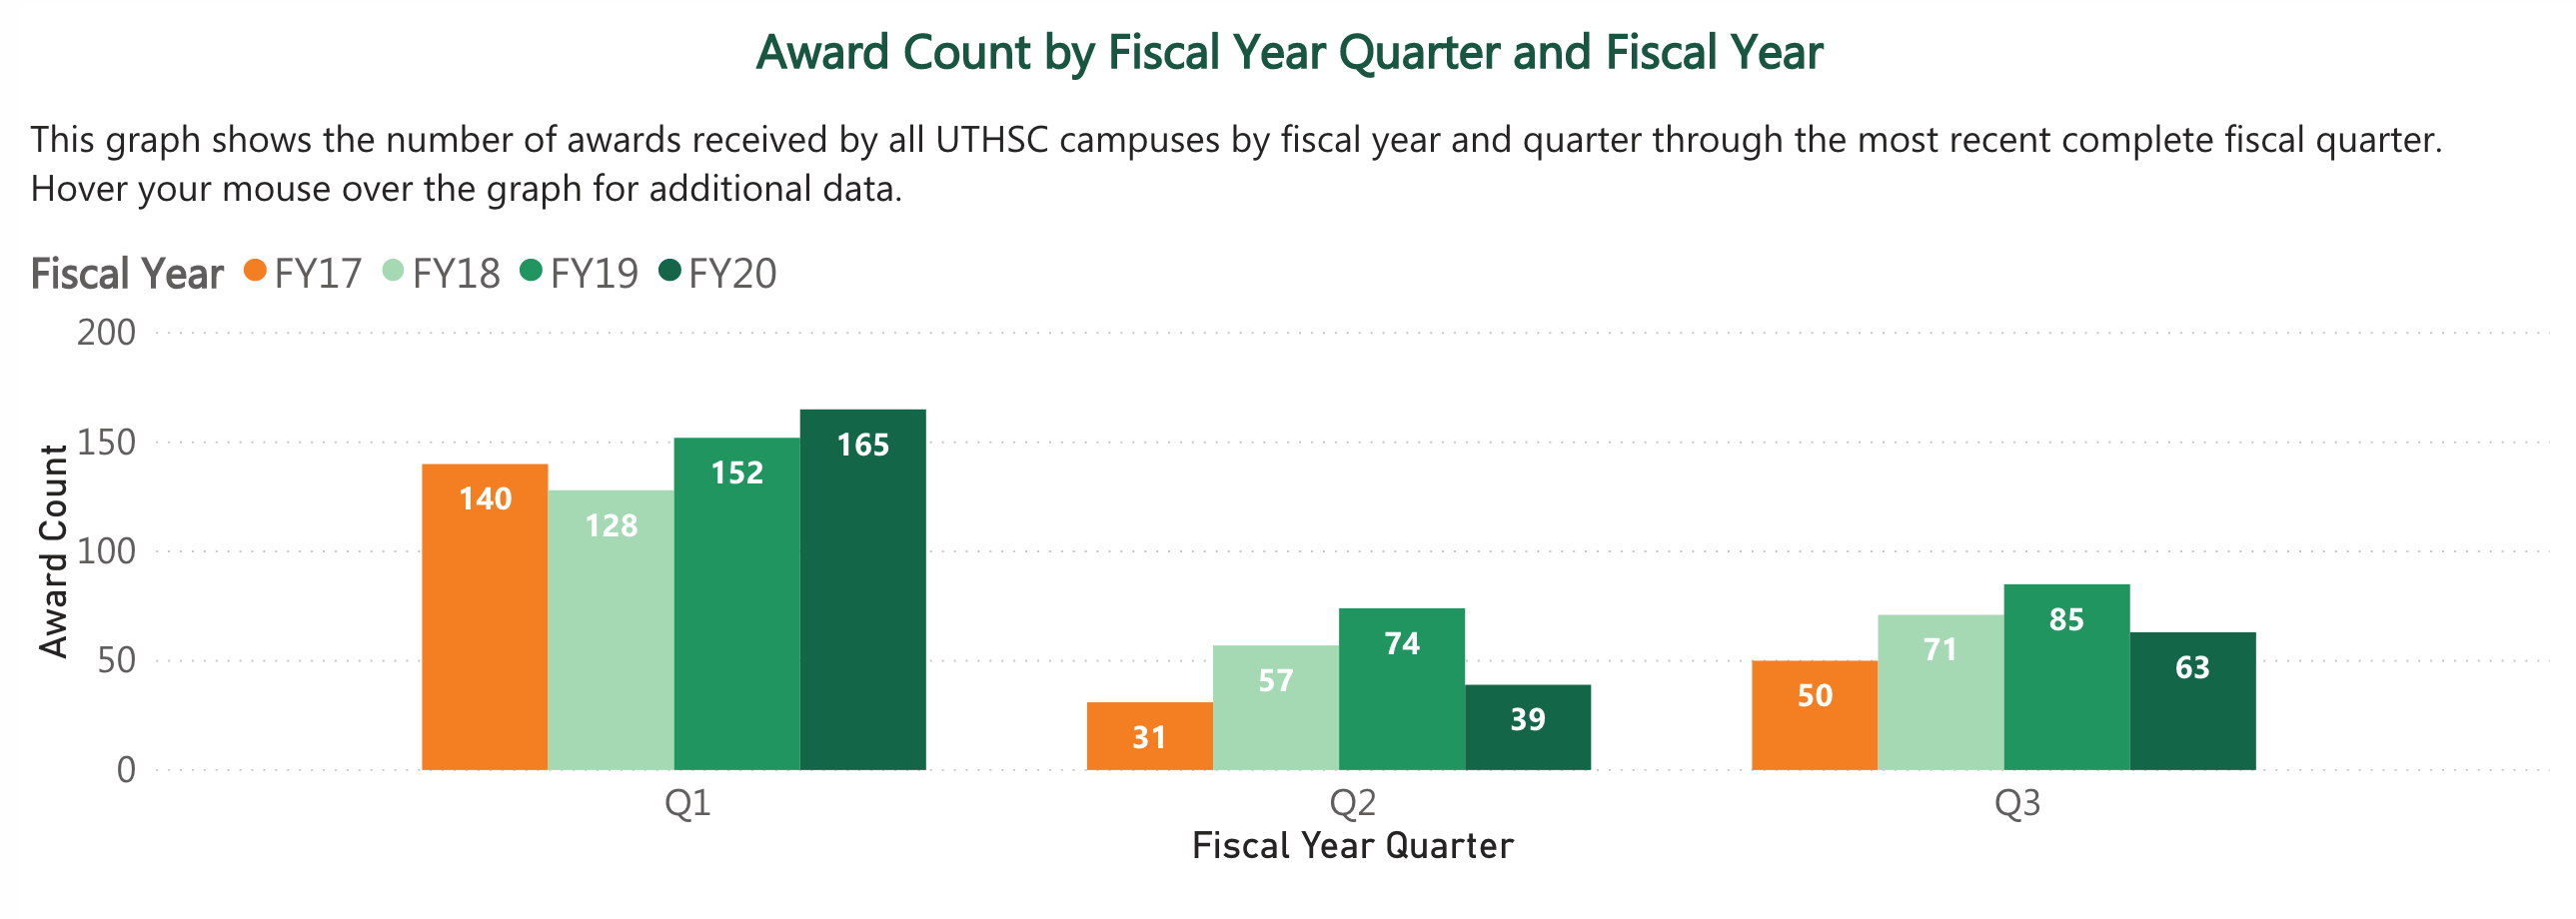 Award Count by Fiscal Year and Fiscal Quarter